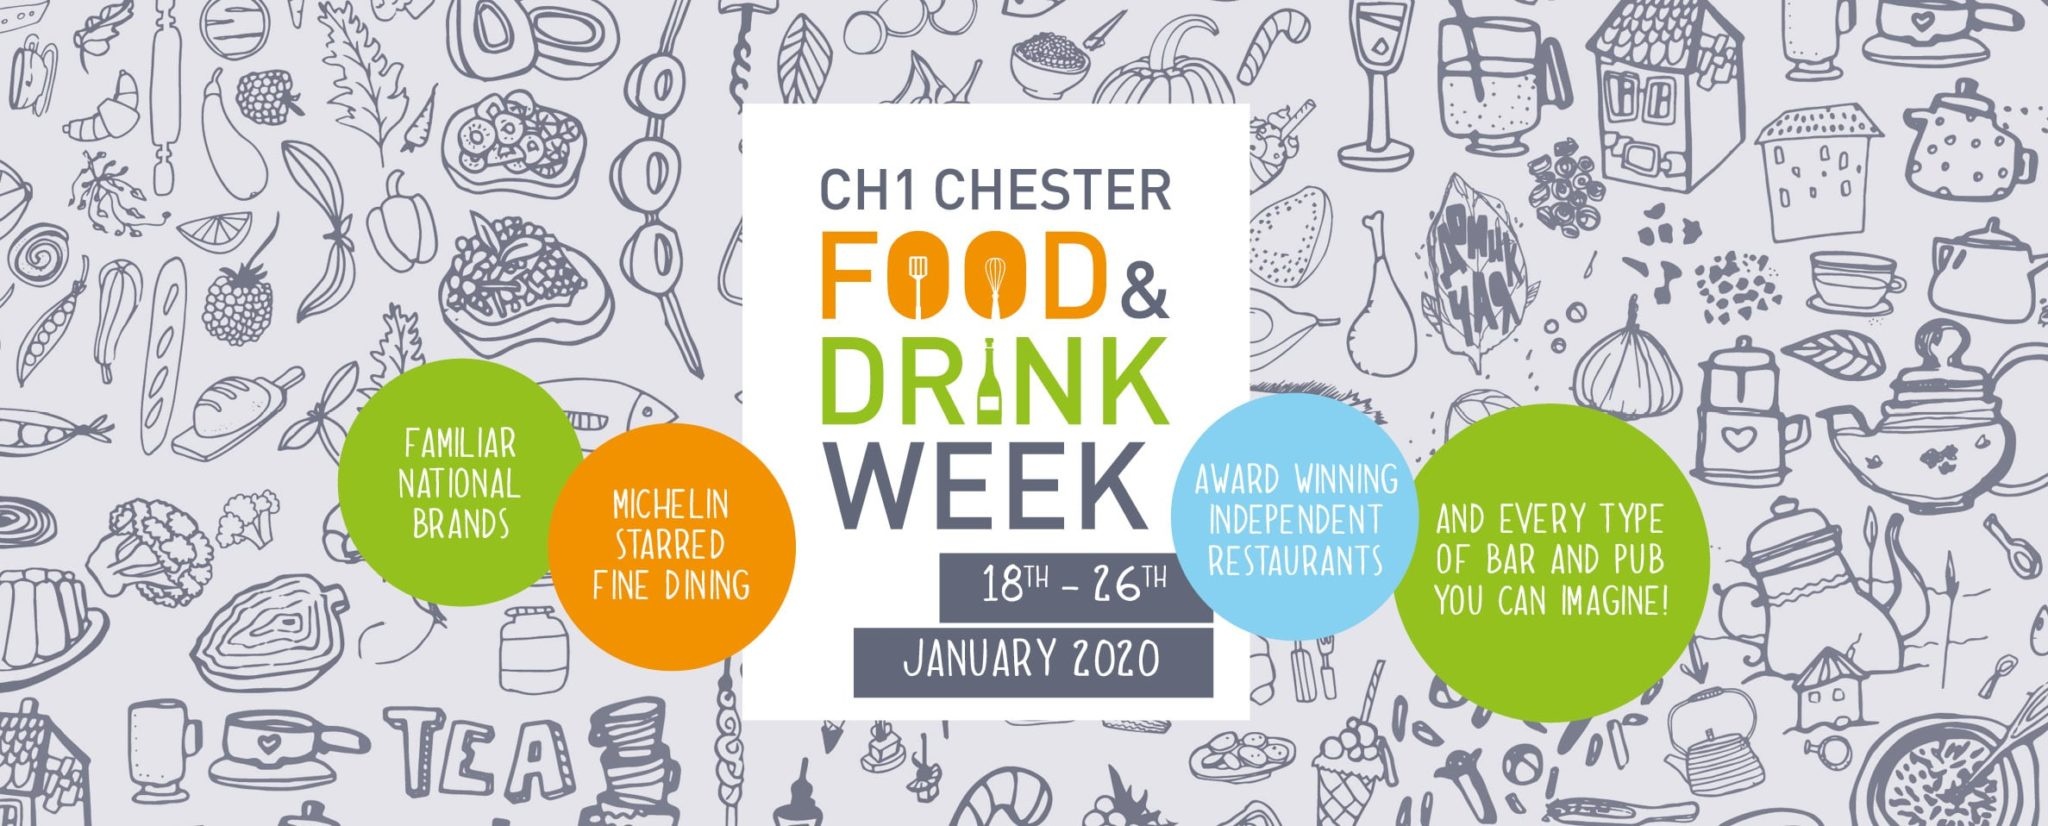 CH1 Chester Food and Drink Week January 2020